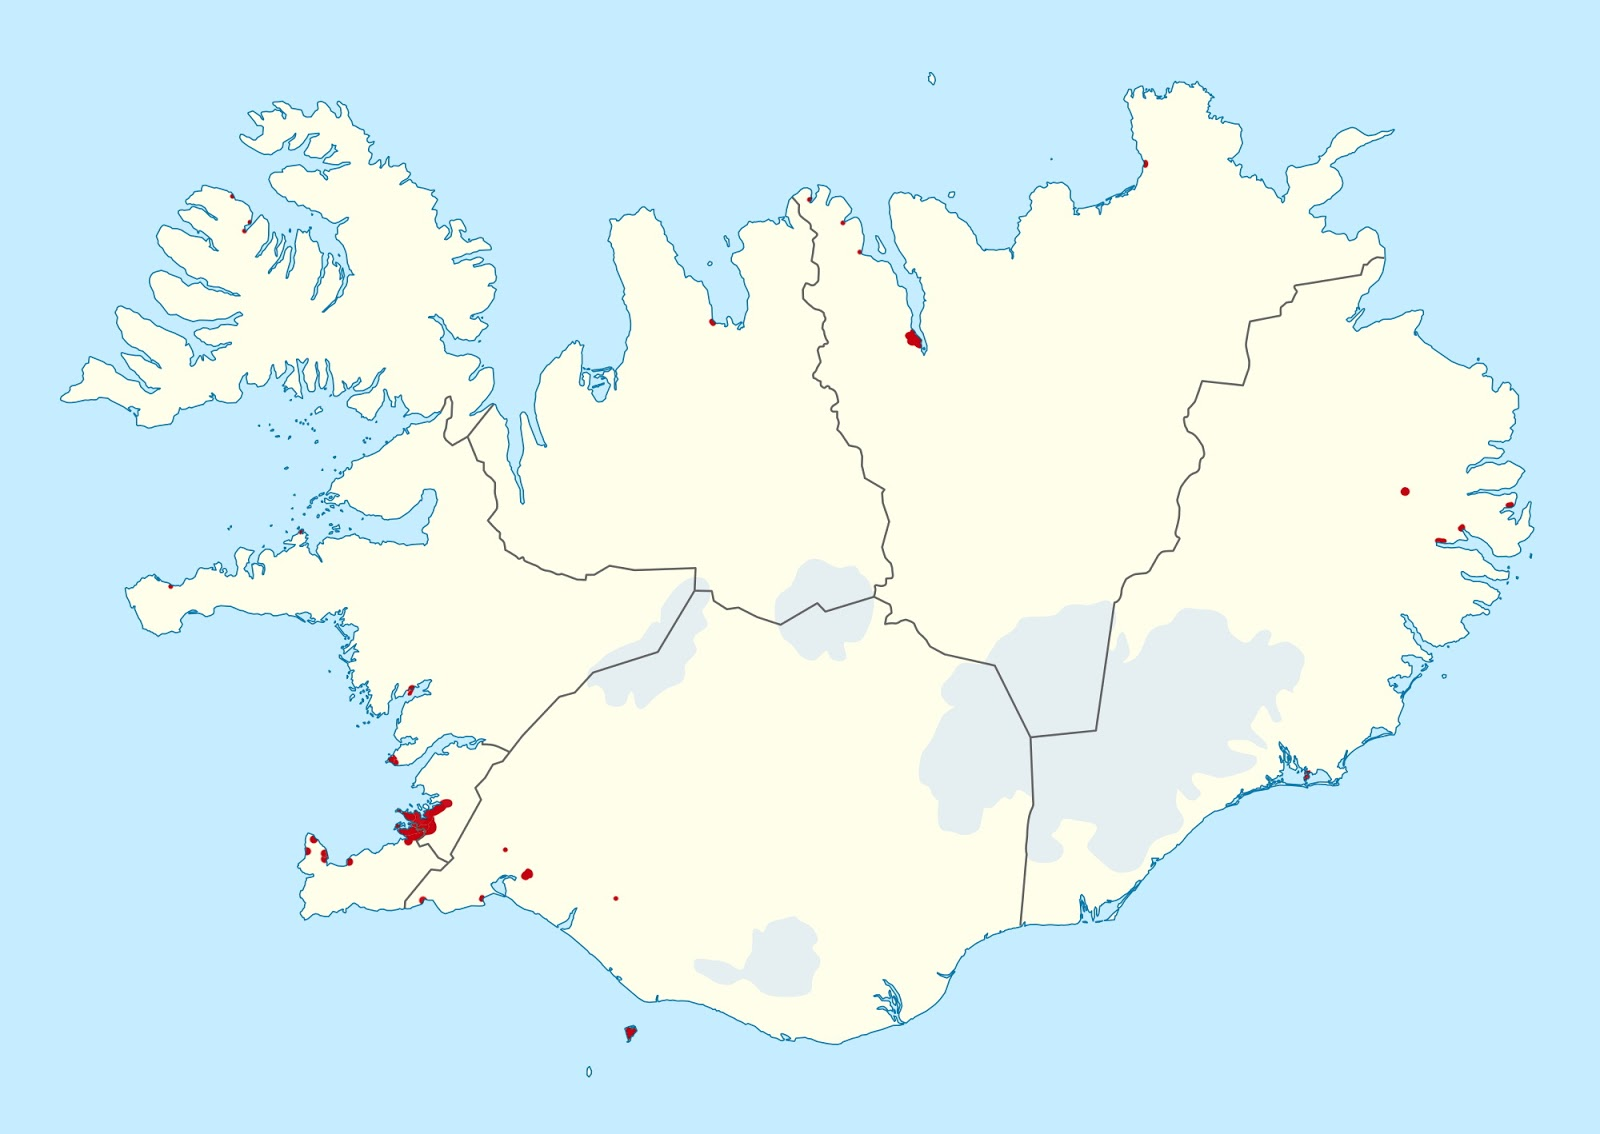 90% of the population of Iceland lives in the red area